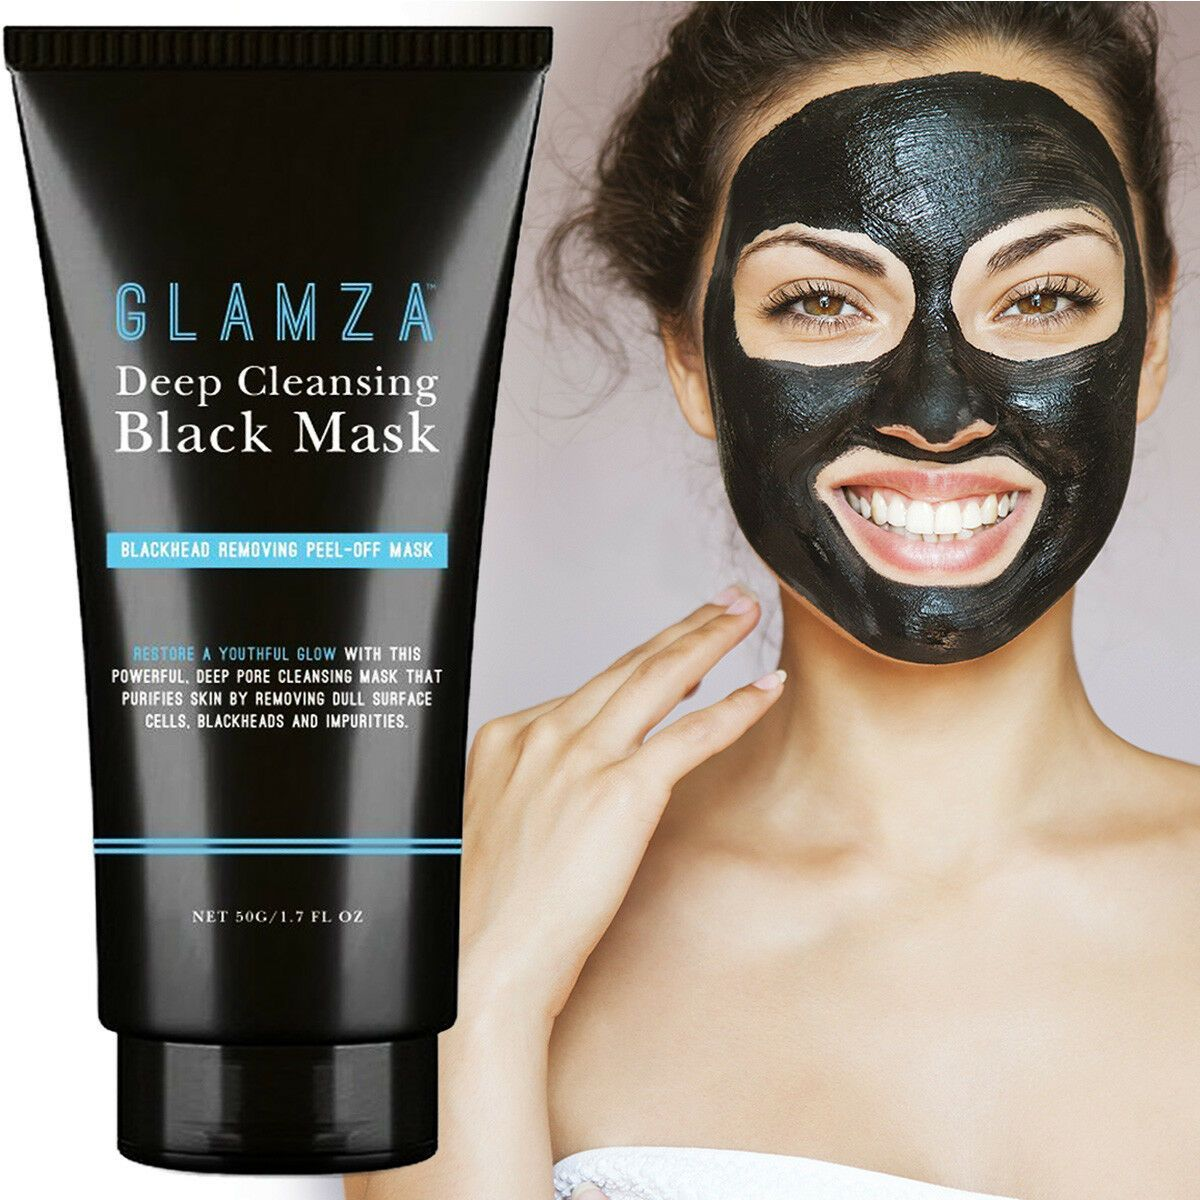 GLAMZA Deep Cleansing Black Mask - Blackhead Removing Peel off Mask 50g, Skin Care Masks & Peels by Forever Cosmetics